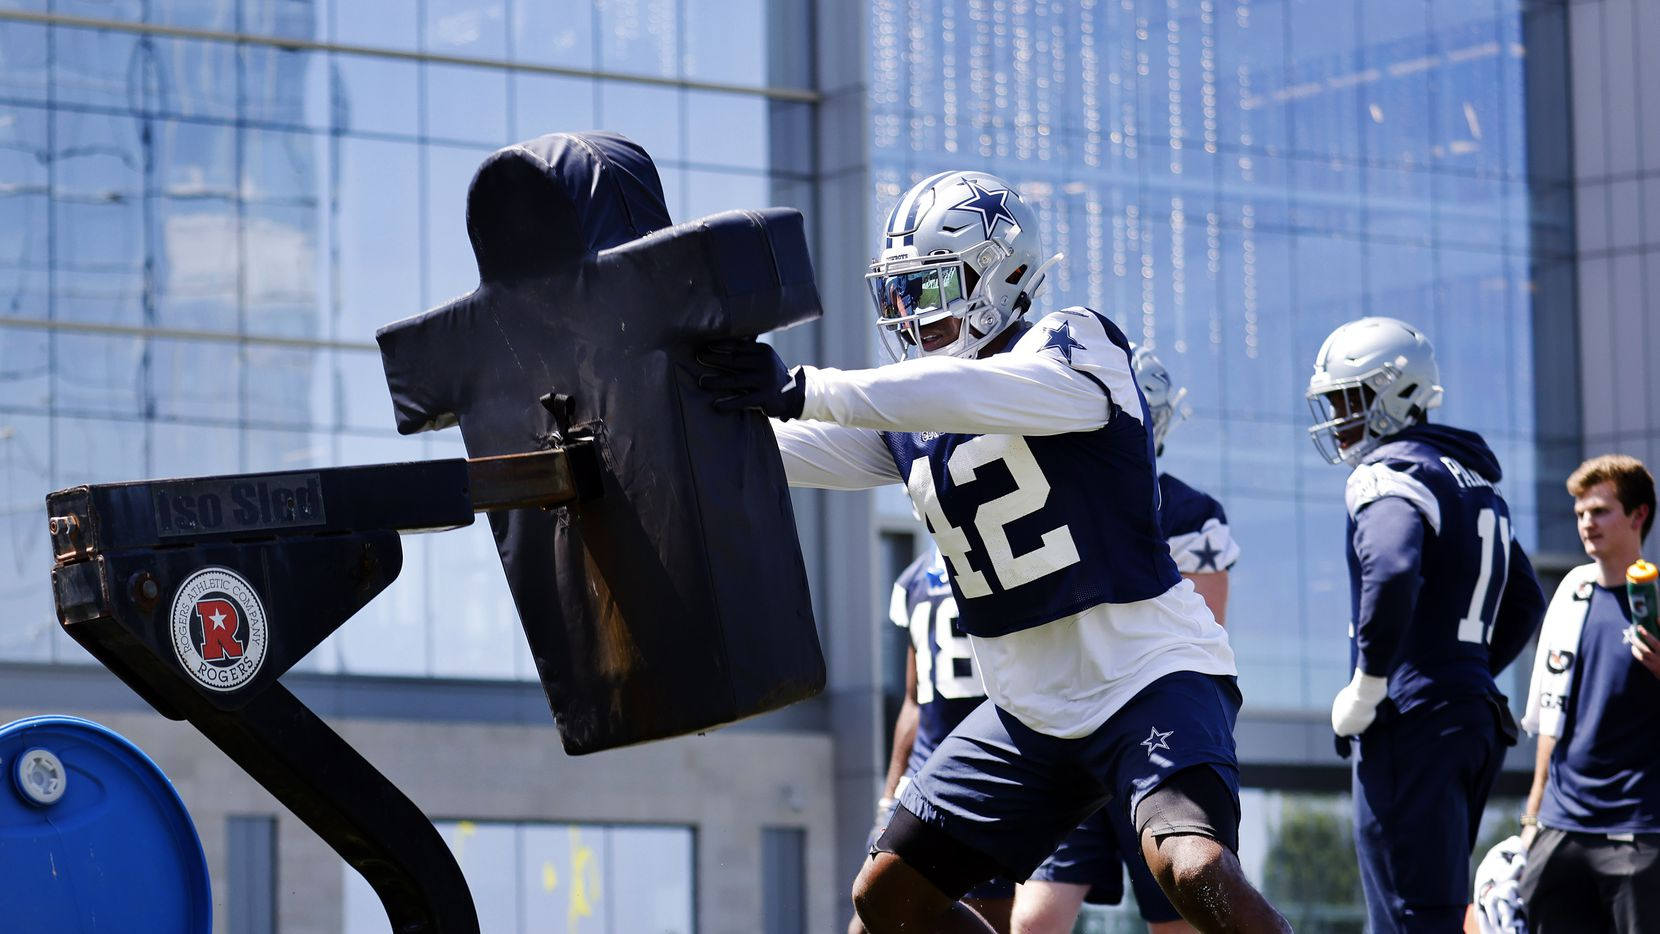 Dallas Cowboys linebacker Keanu Neal (42) hits the blocking dummies during Training Camp practice at The Star in Frisco, Texas, Wednesday, August 25, 2021.